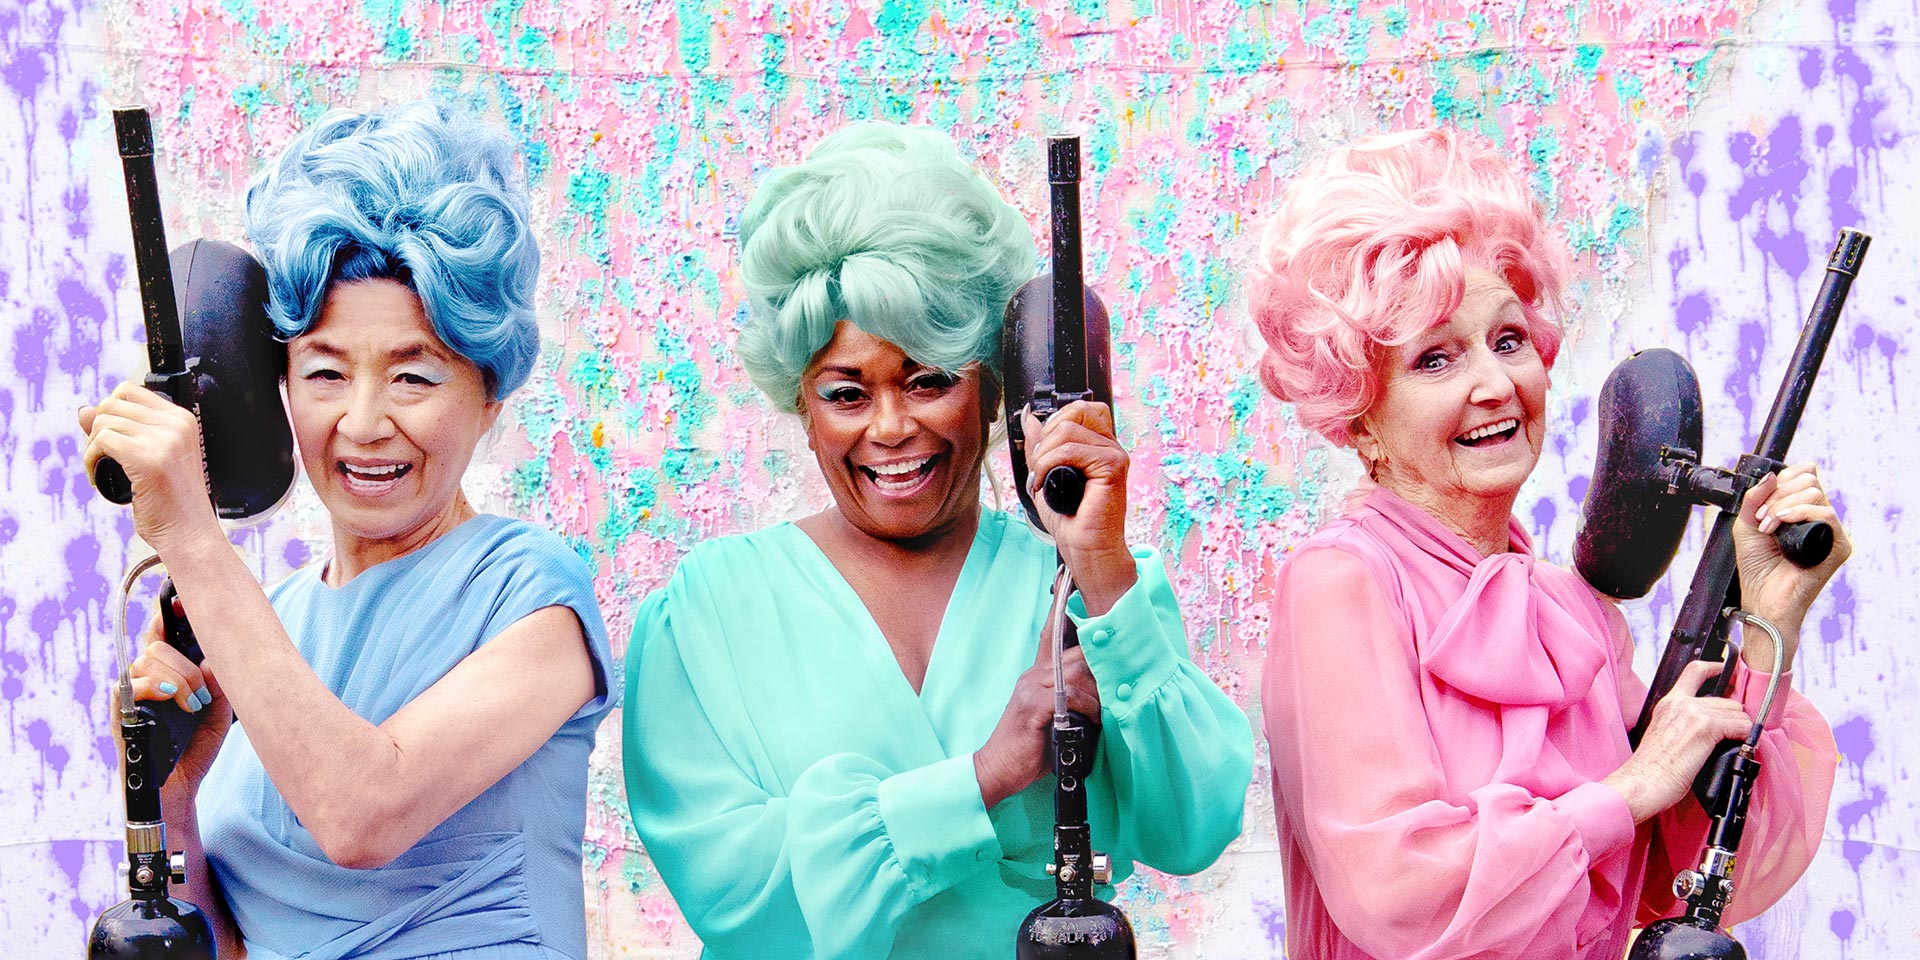 Three older women wearing monochrome outfits with wigs, one blue, one green, one pink, in front of a colorful backdrop